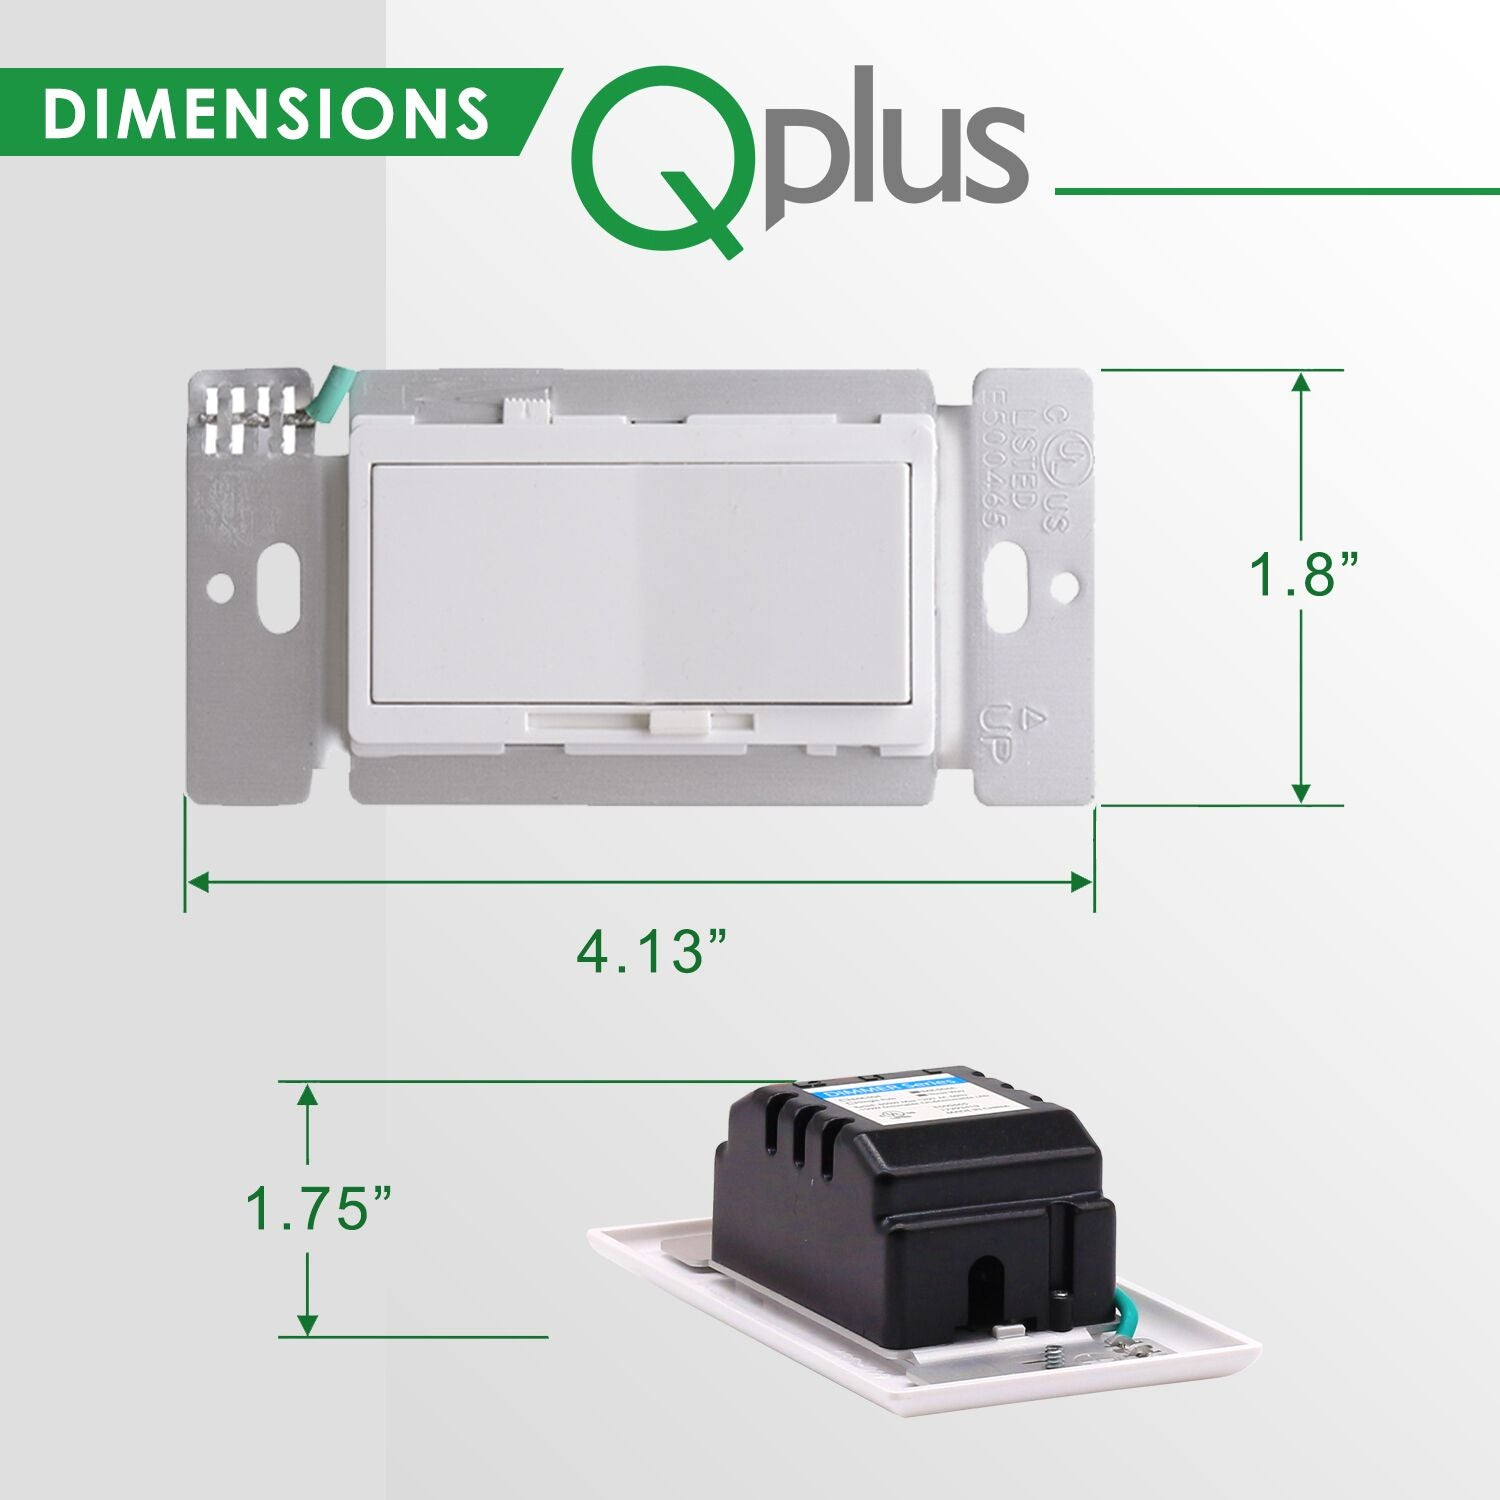 Dimmer switch shape & size